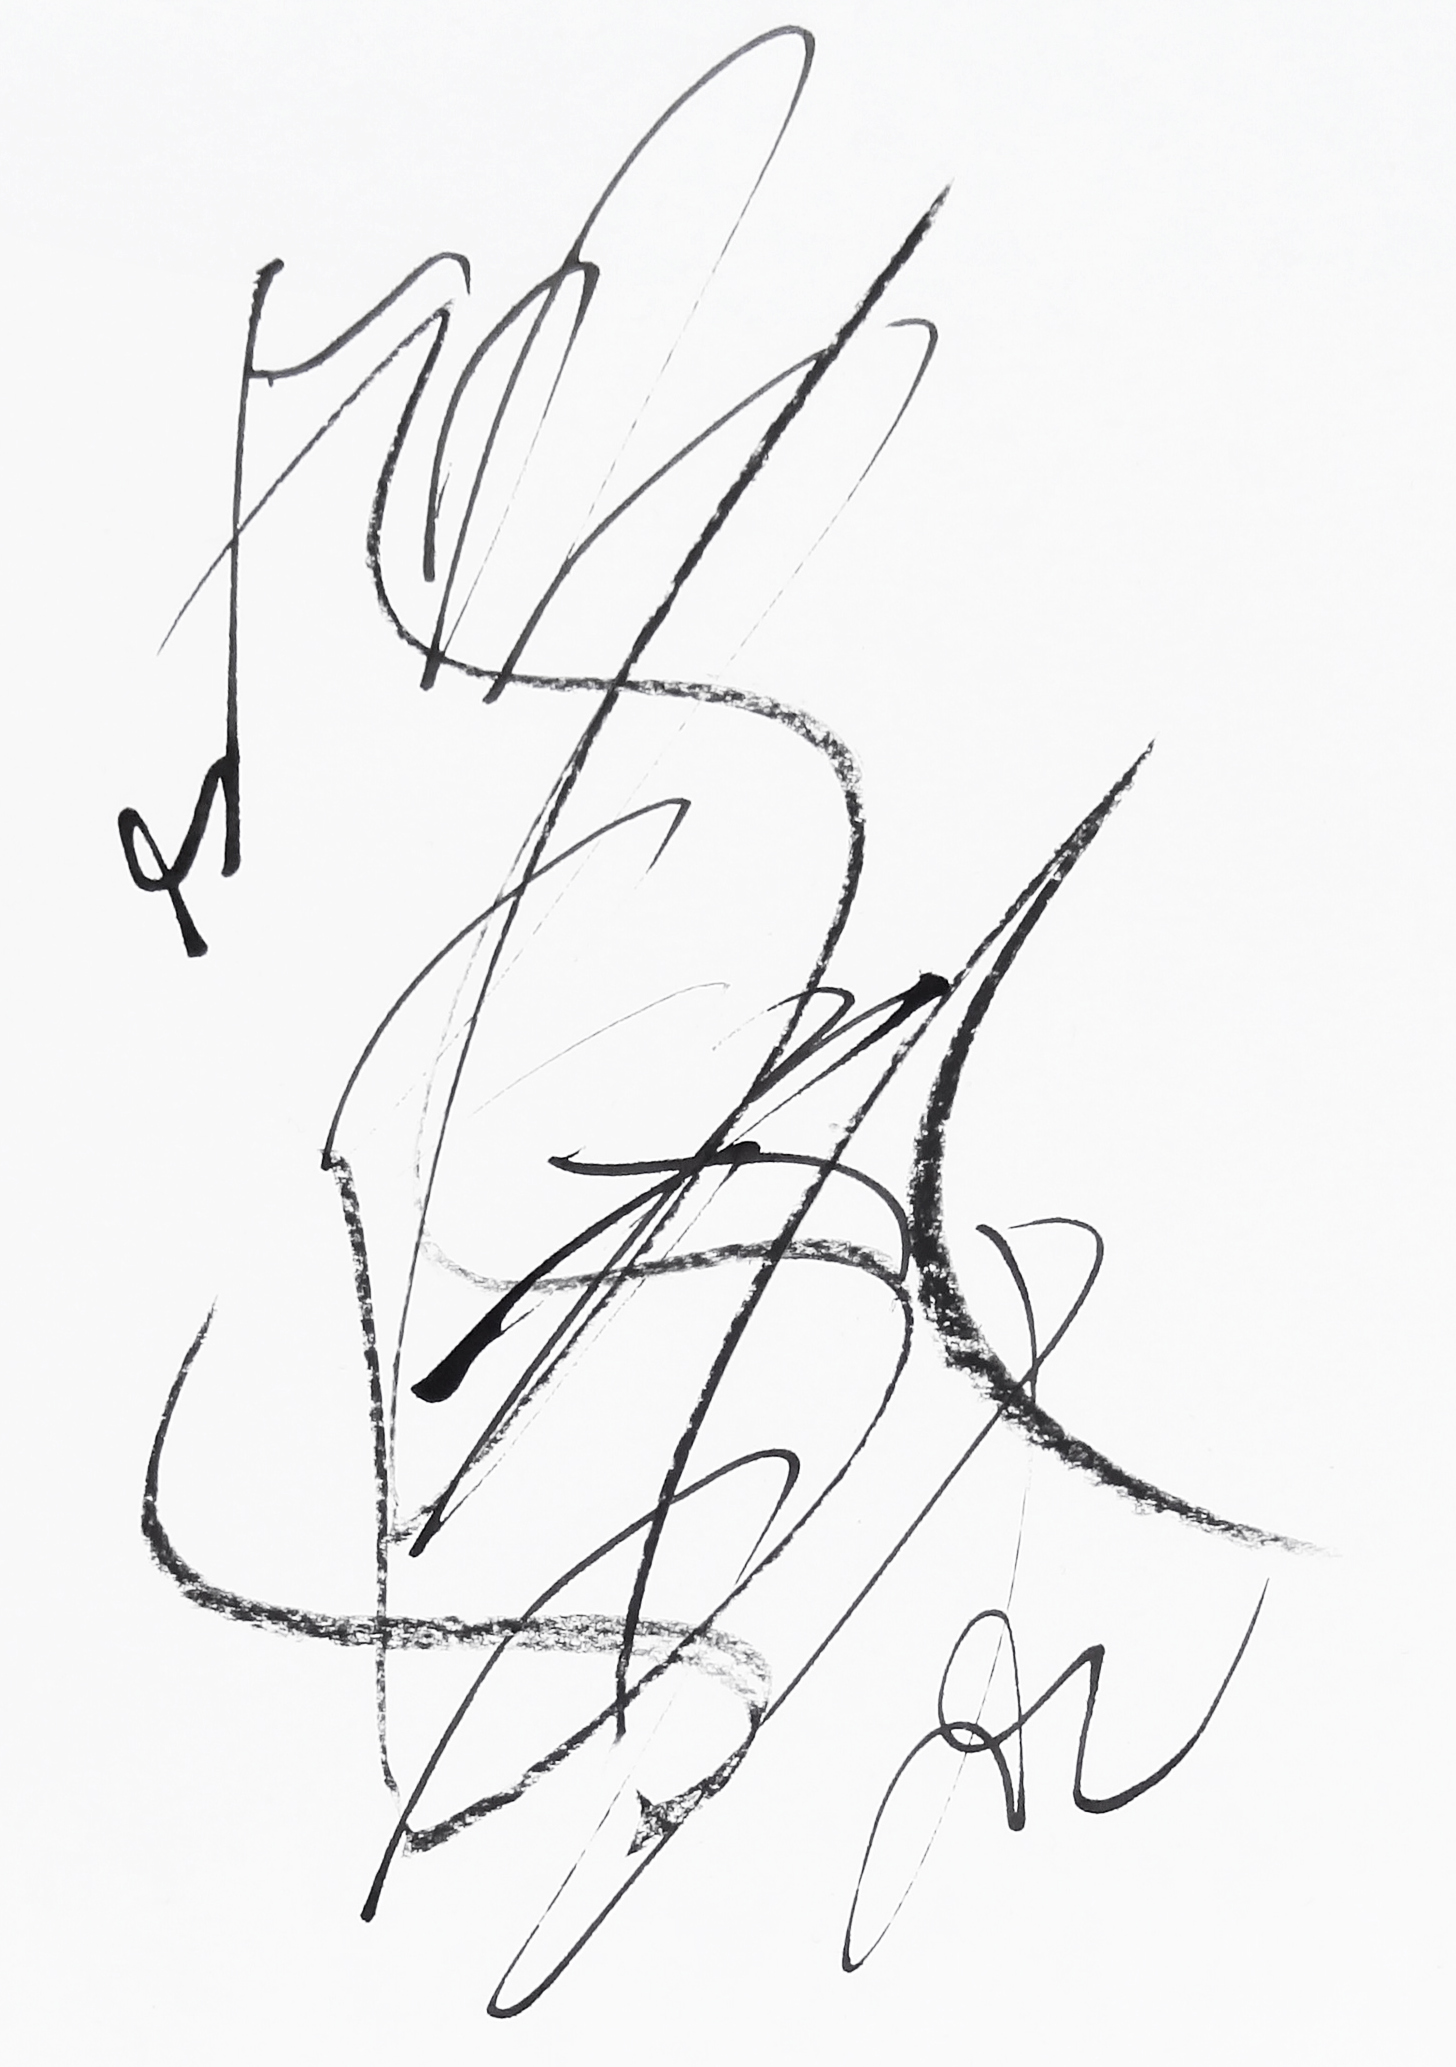 rhythm and flow studies, 2019 calligraphy ink and chalk on paper 42,0 x 29,7 cm (16-19)